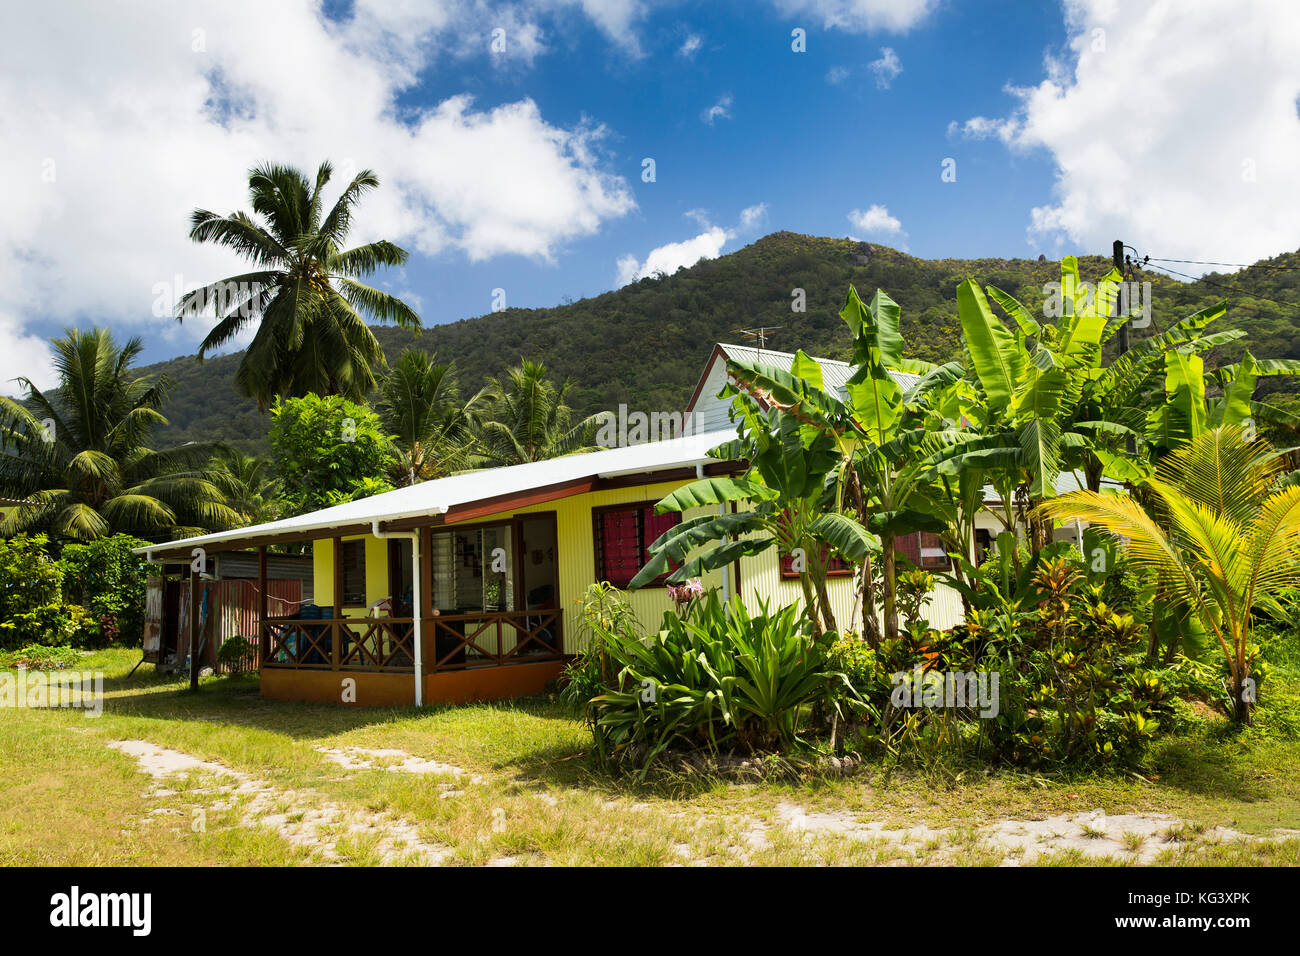 The Seychelles, Praslin, Grand Anse, traditional village house in lush tropical garden - Stock Image